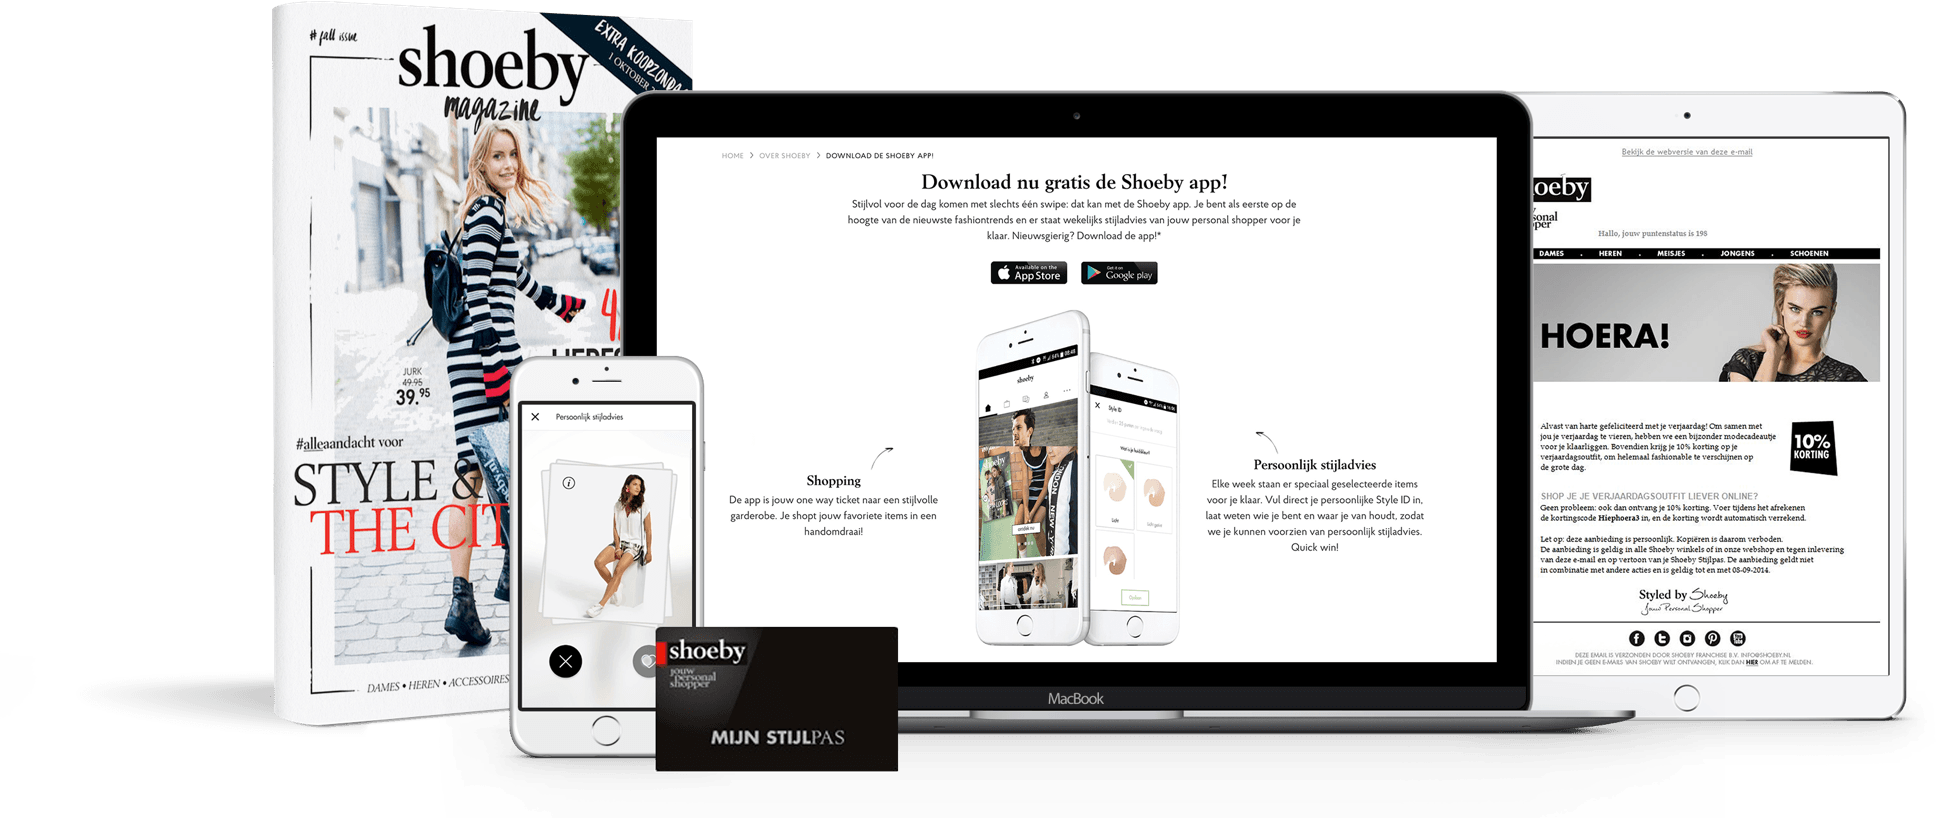 Shoeby's omnichannel loyalty program example of website, emails, mobile app & print